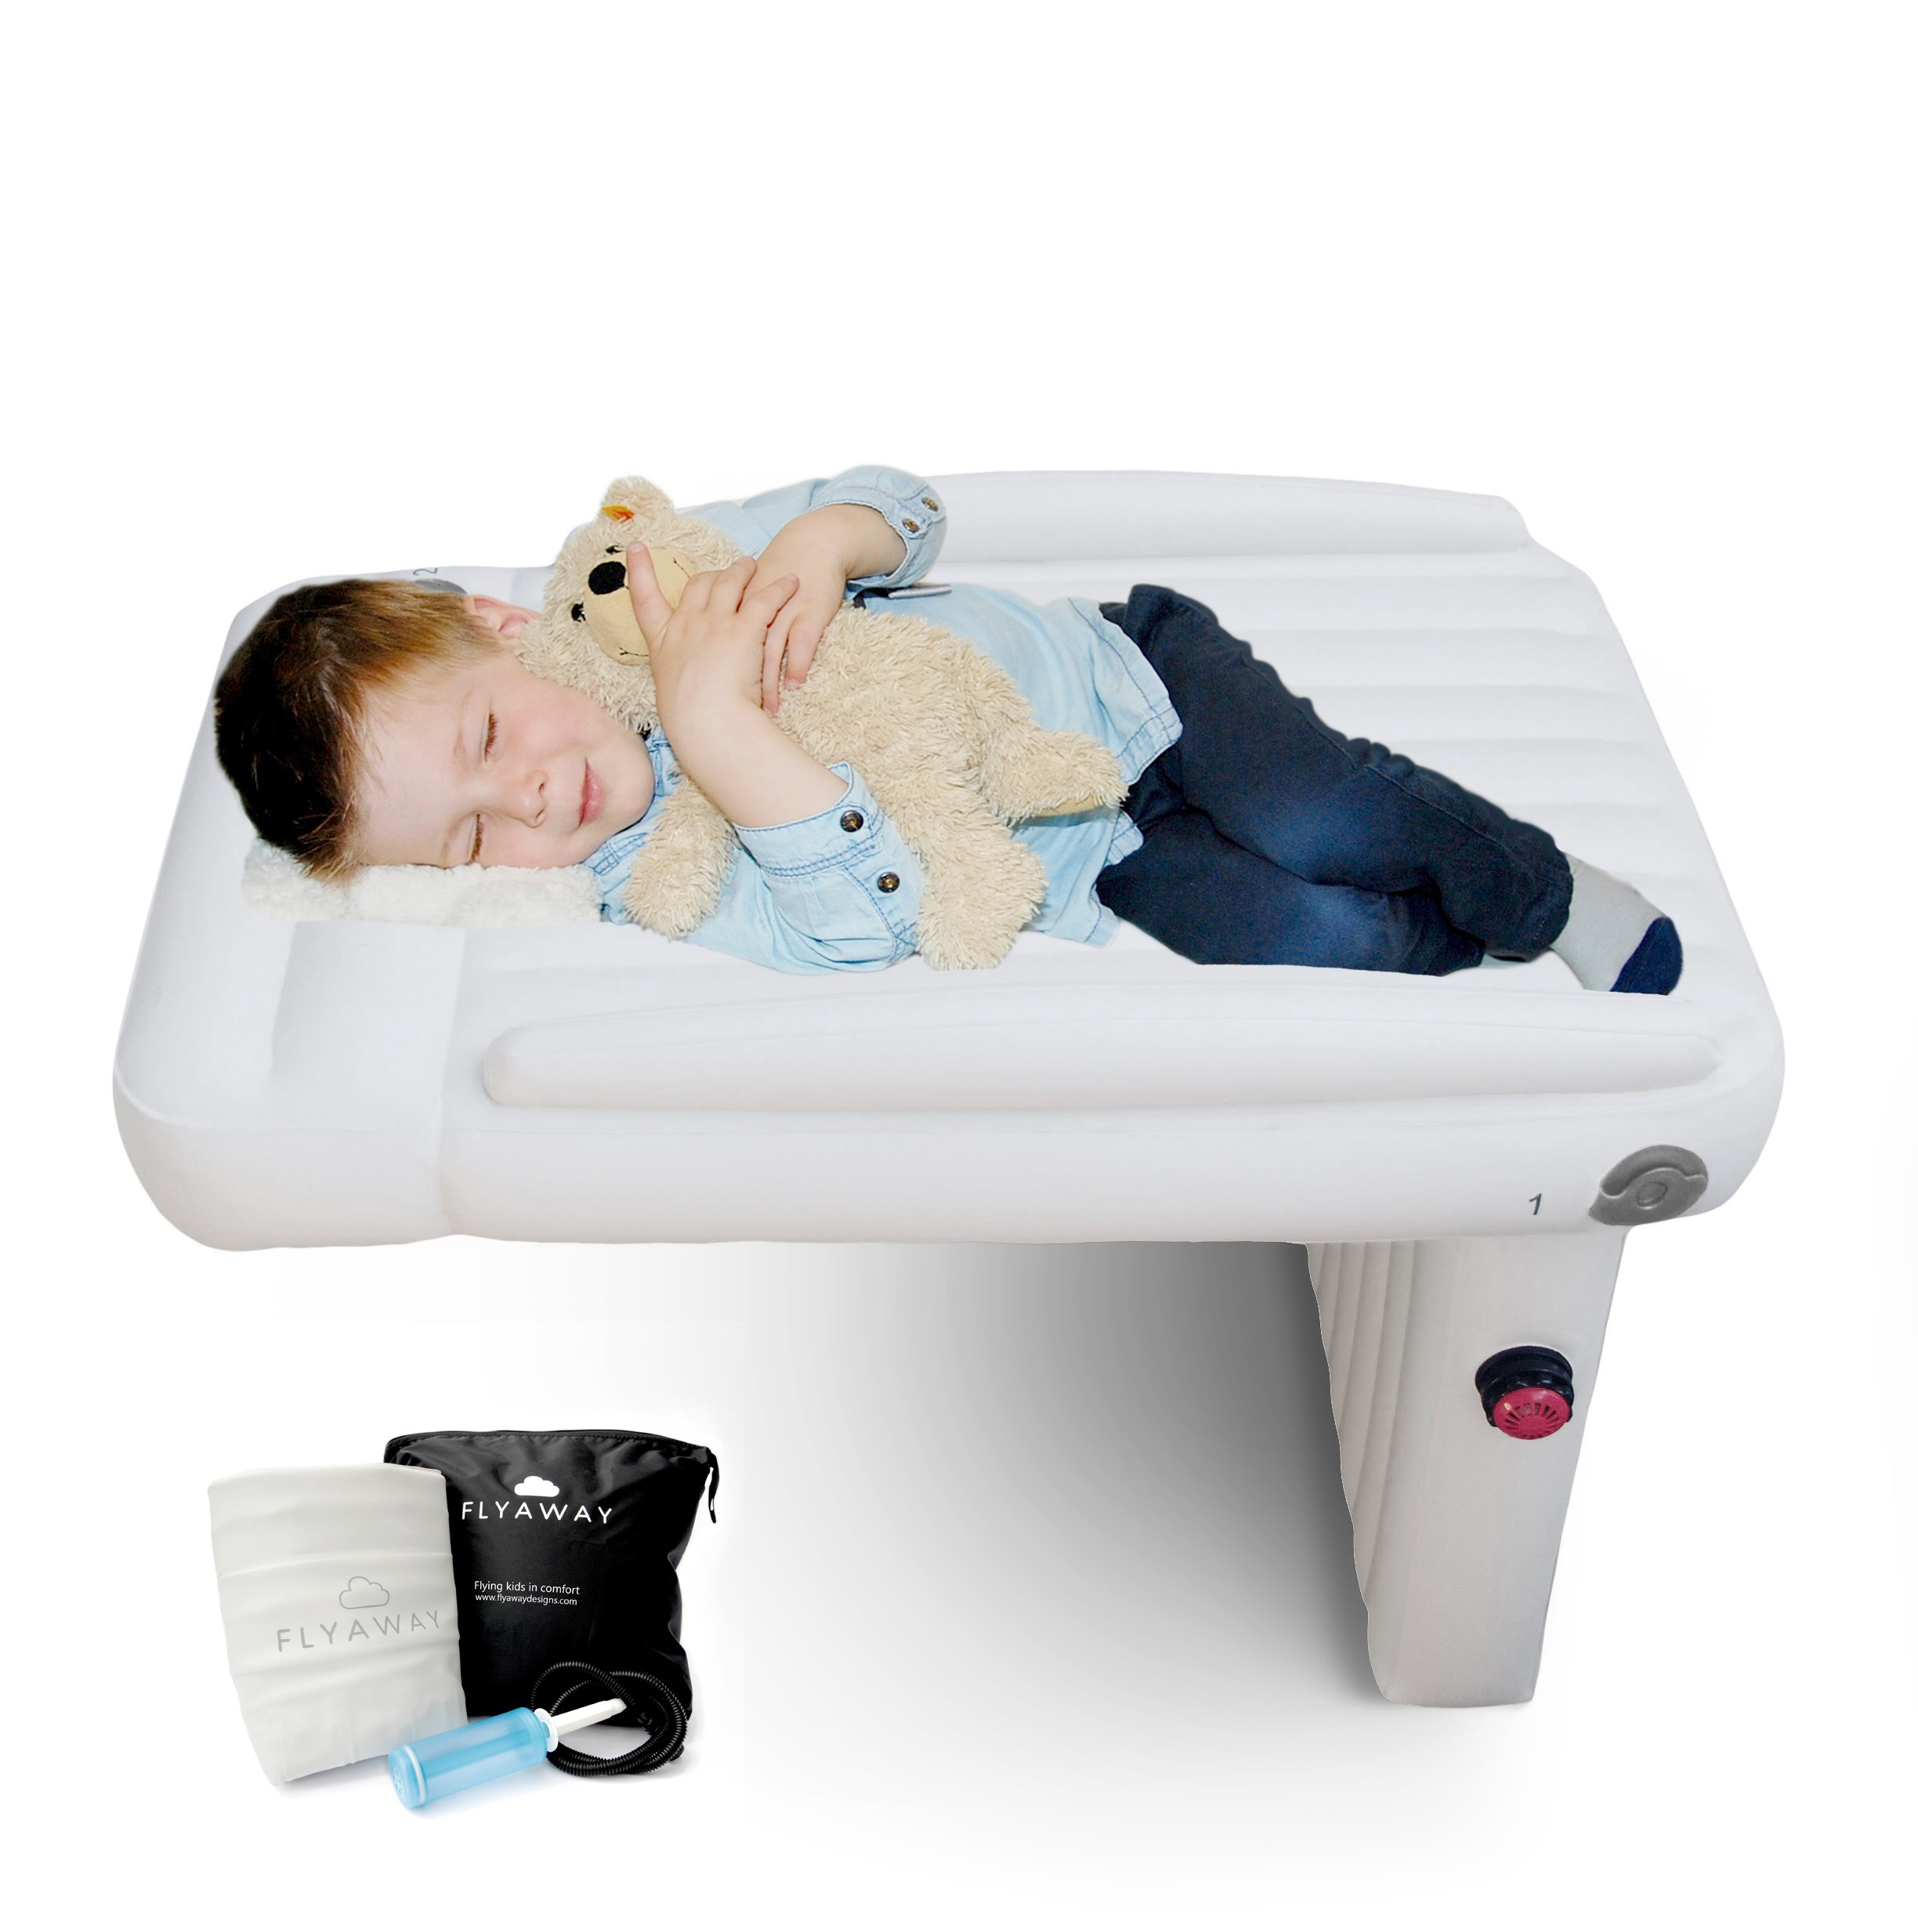 Helping Kids To Sleep On Planes Are Sleep Devices Allowed By Airlines Our Globetrotters